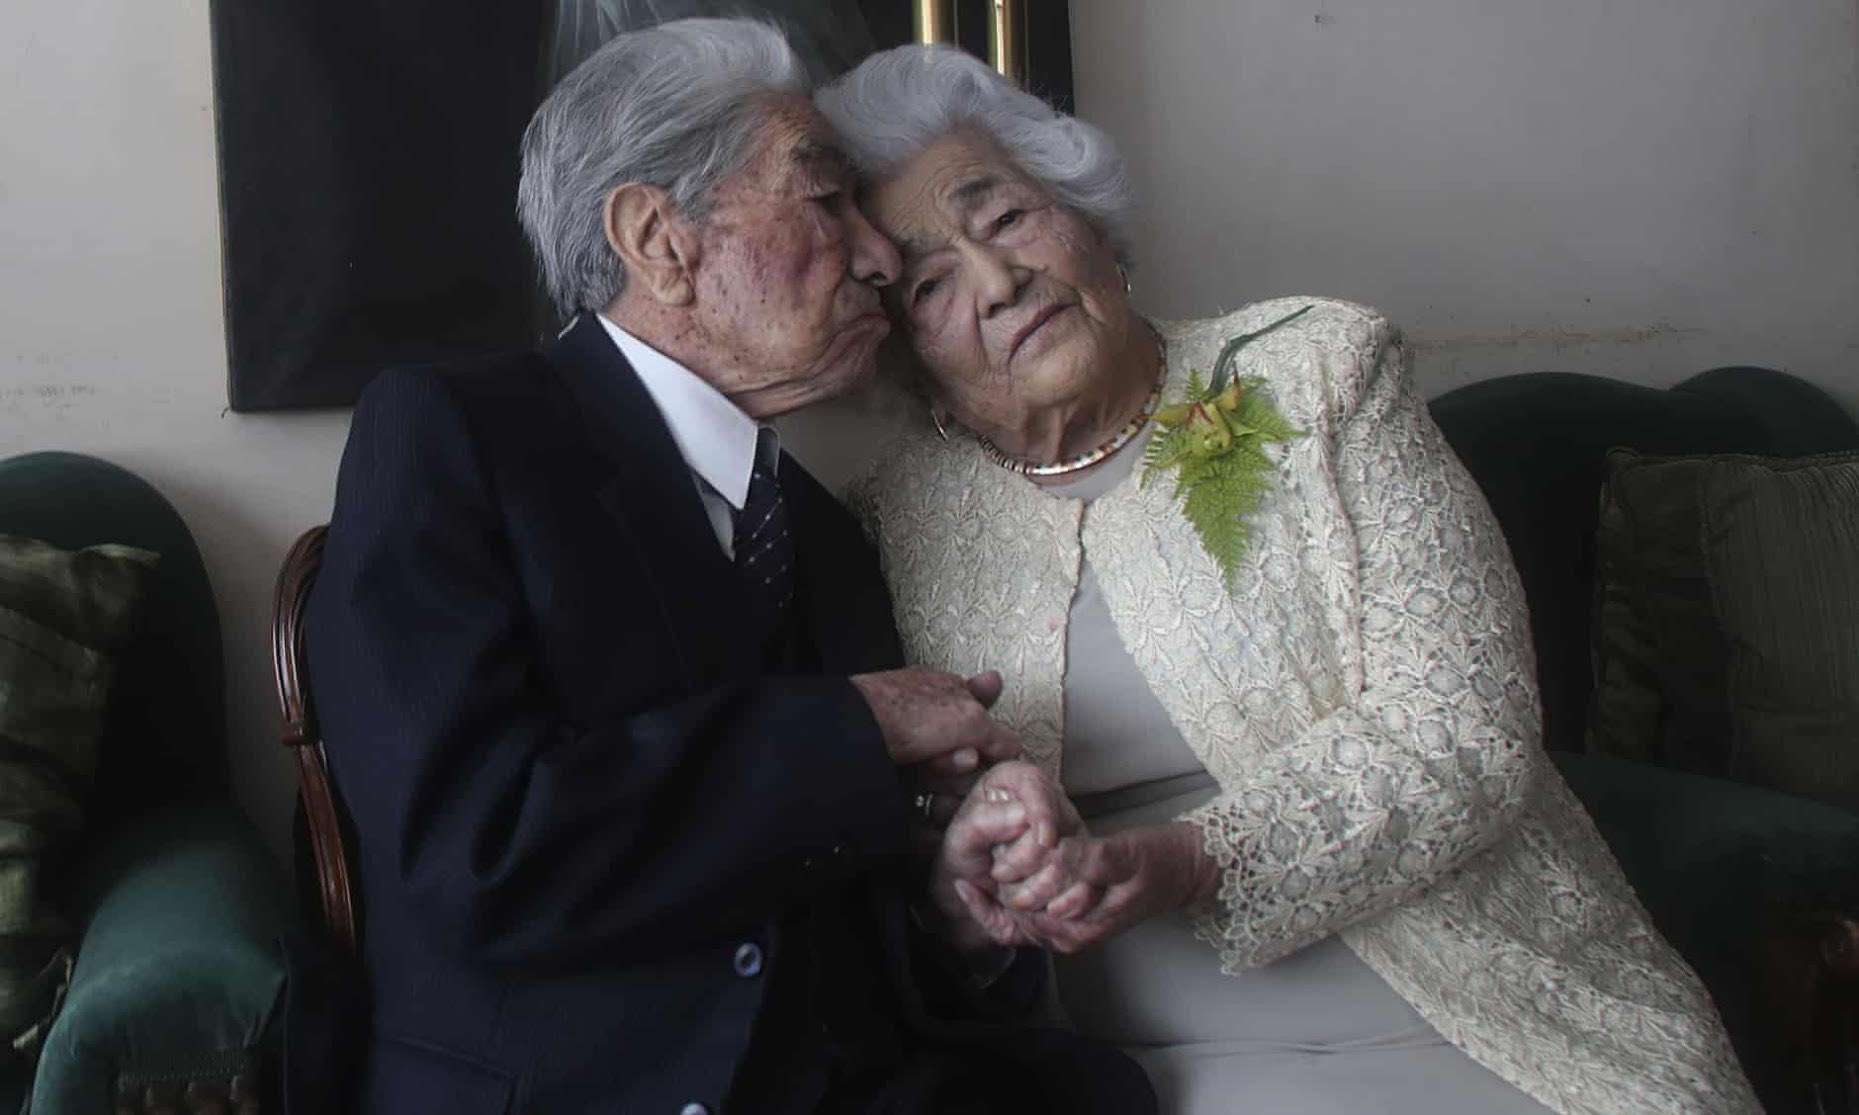 Ecuadorian Couple sets Guinness World Record by becoming World's Oldest Married Couple